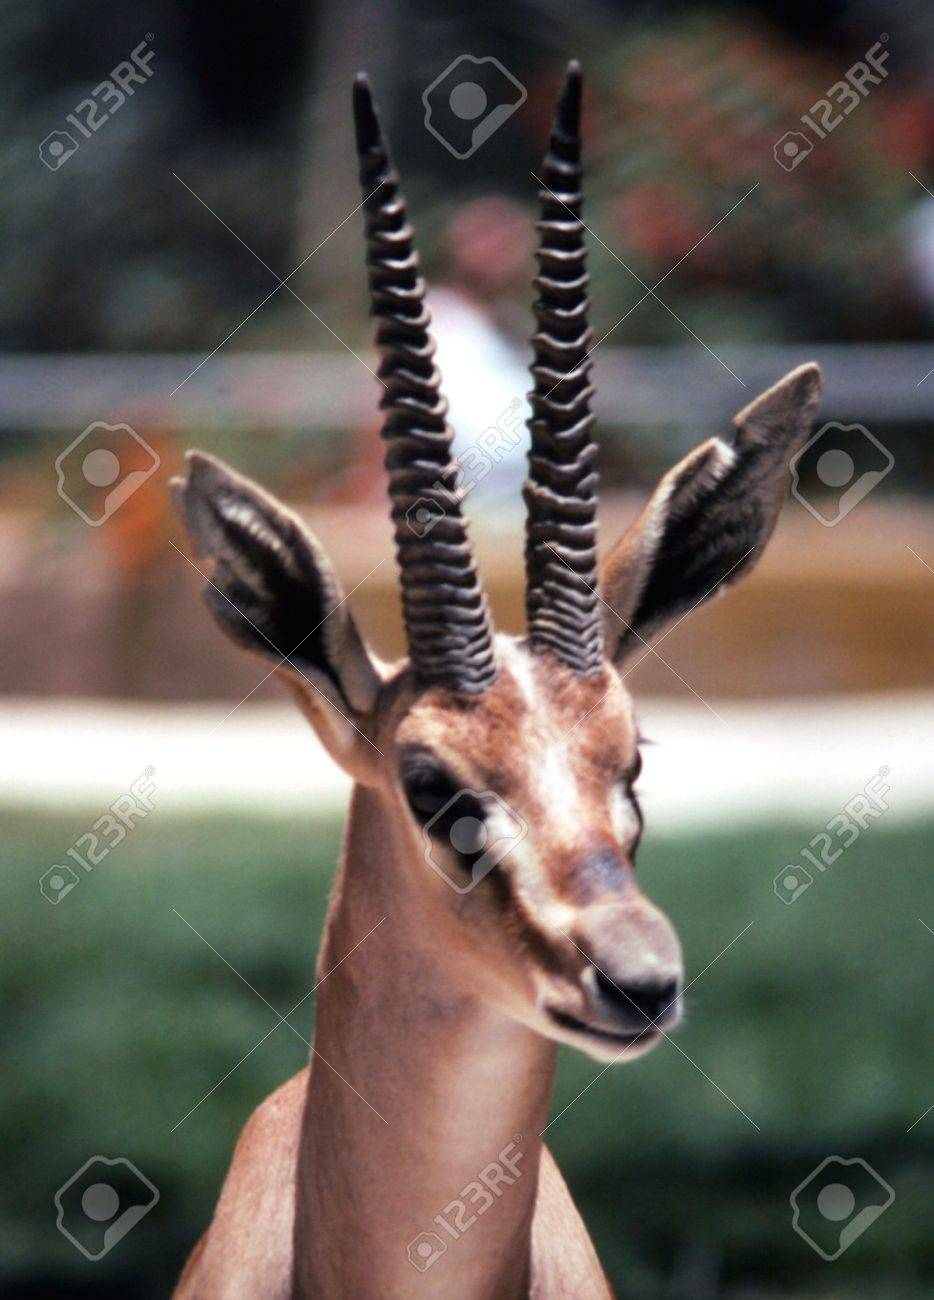 Gazelle Head Stock Photo, Picture And Royalty Free Image. Image ...